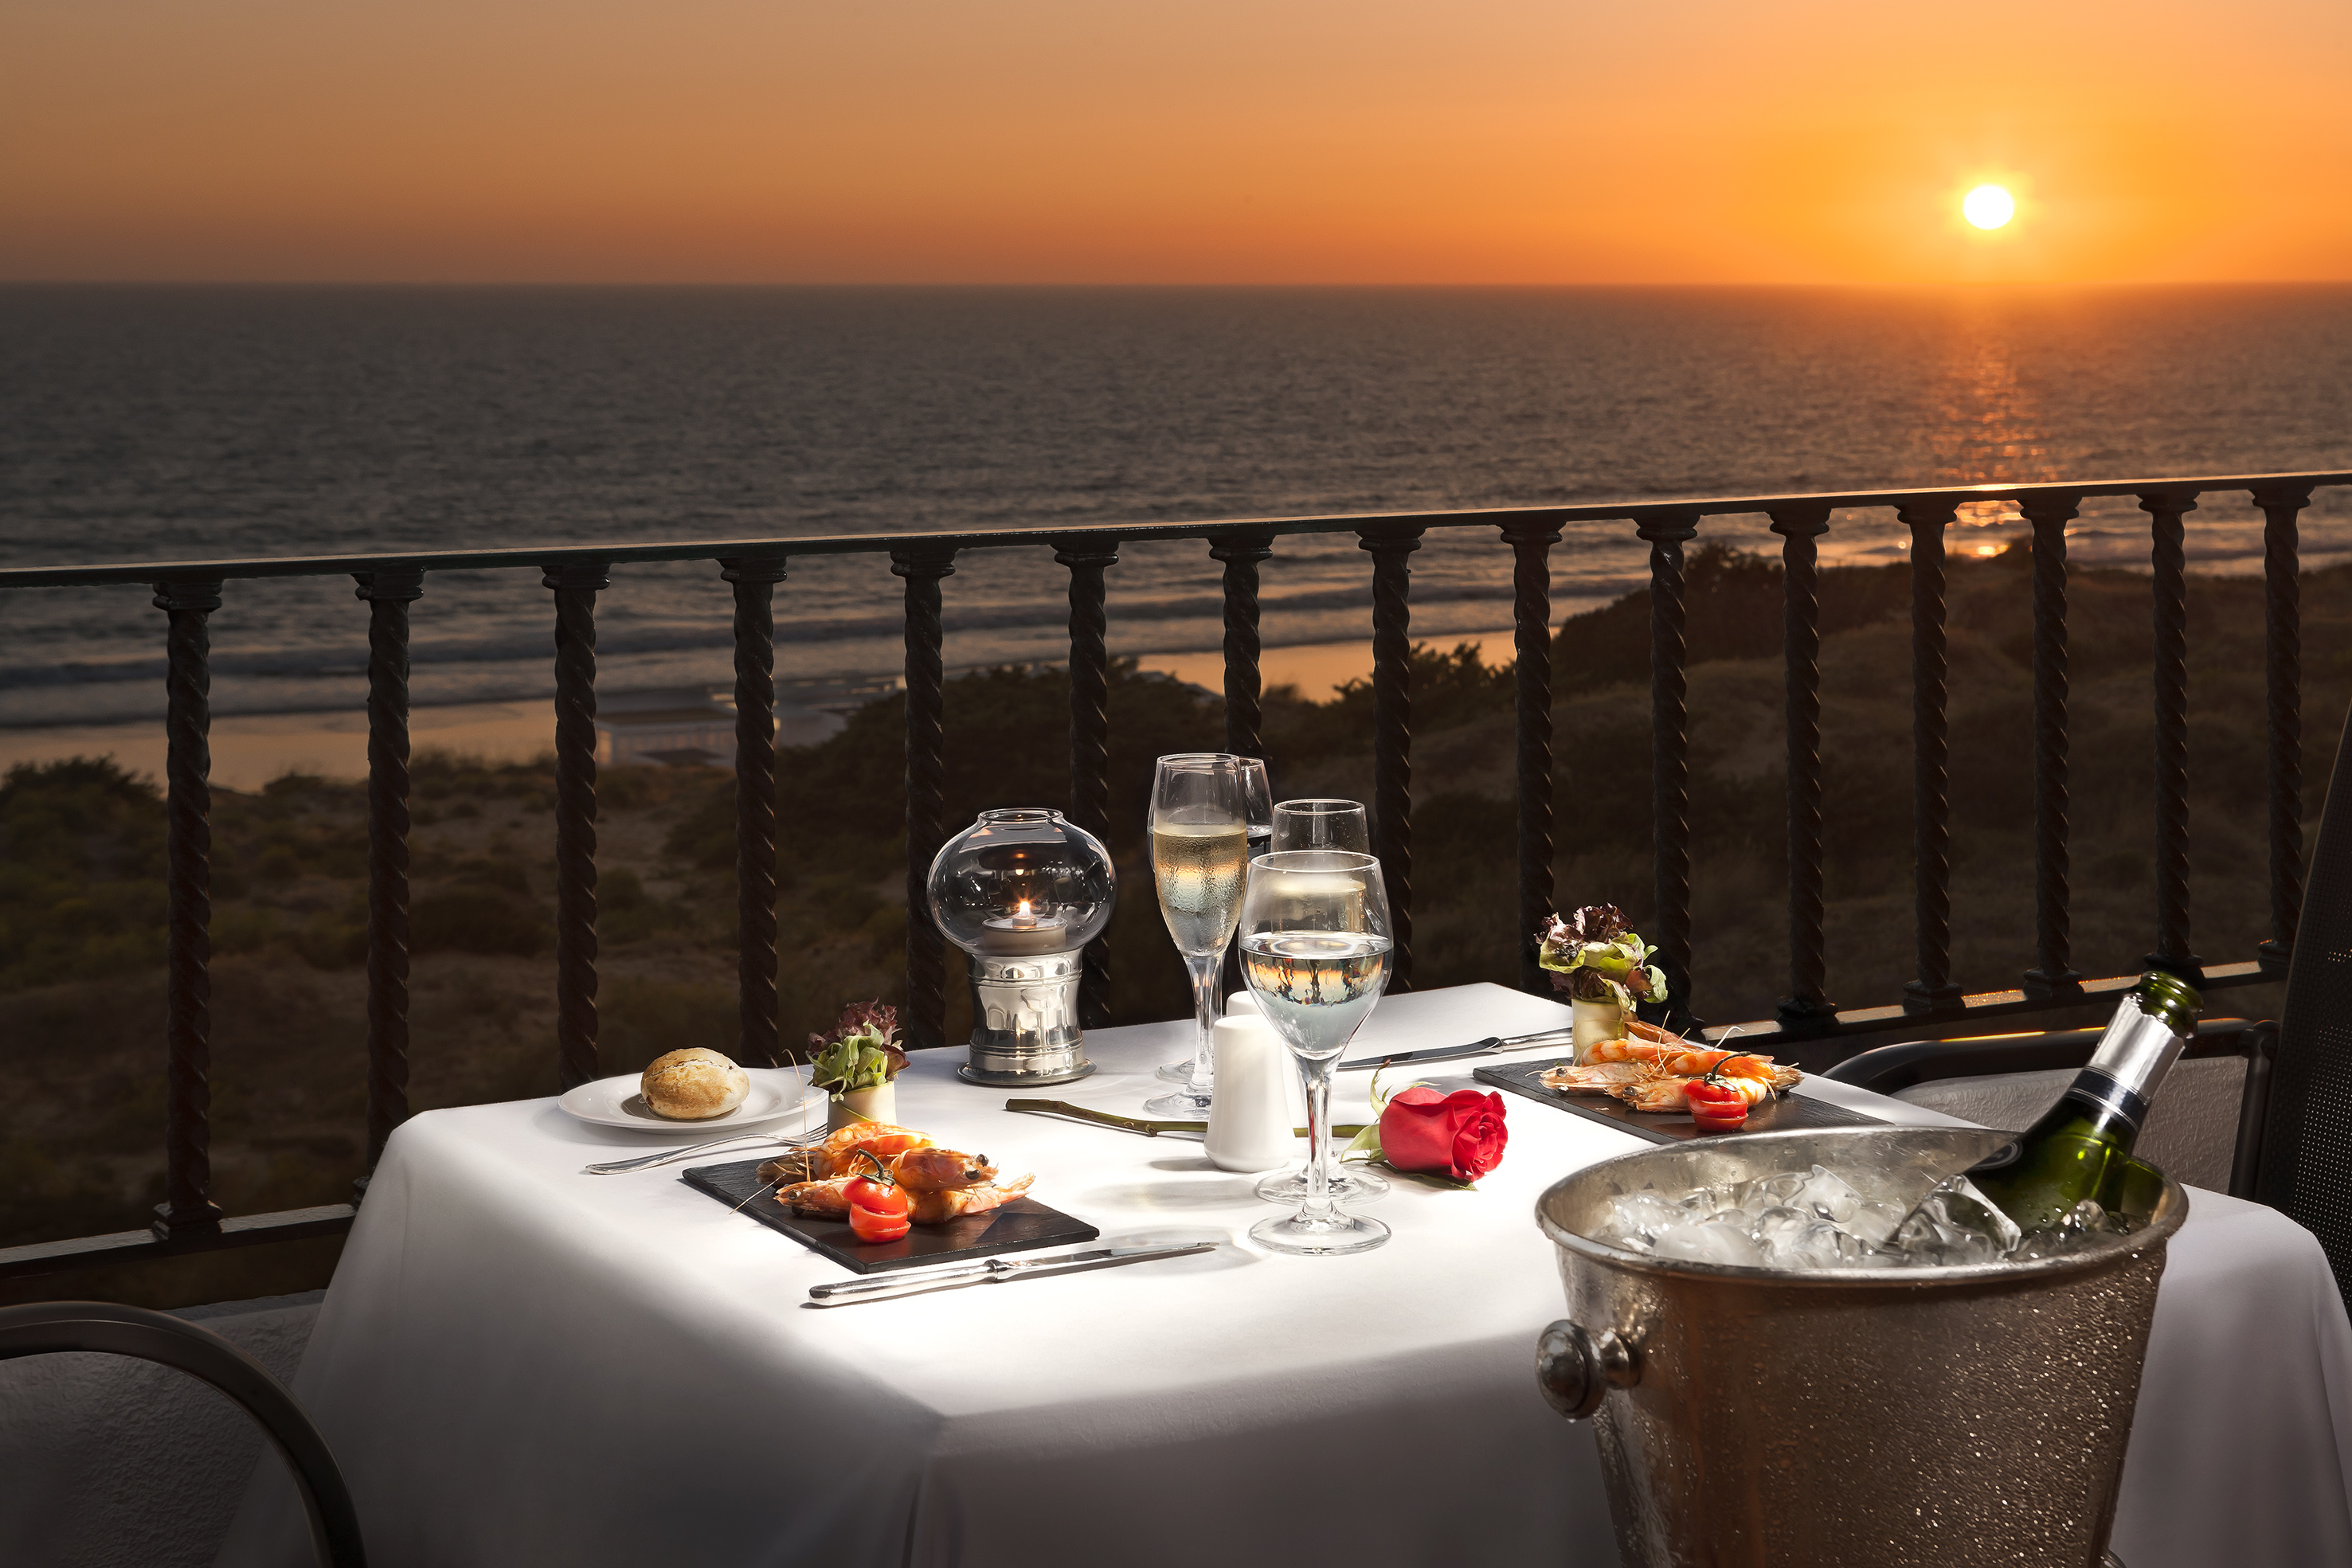 Dinner for two with a view